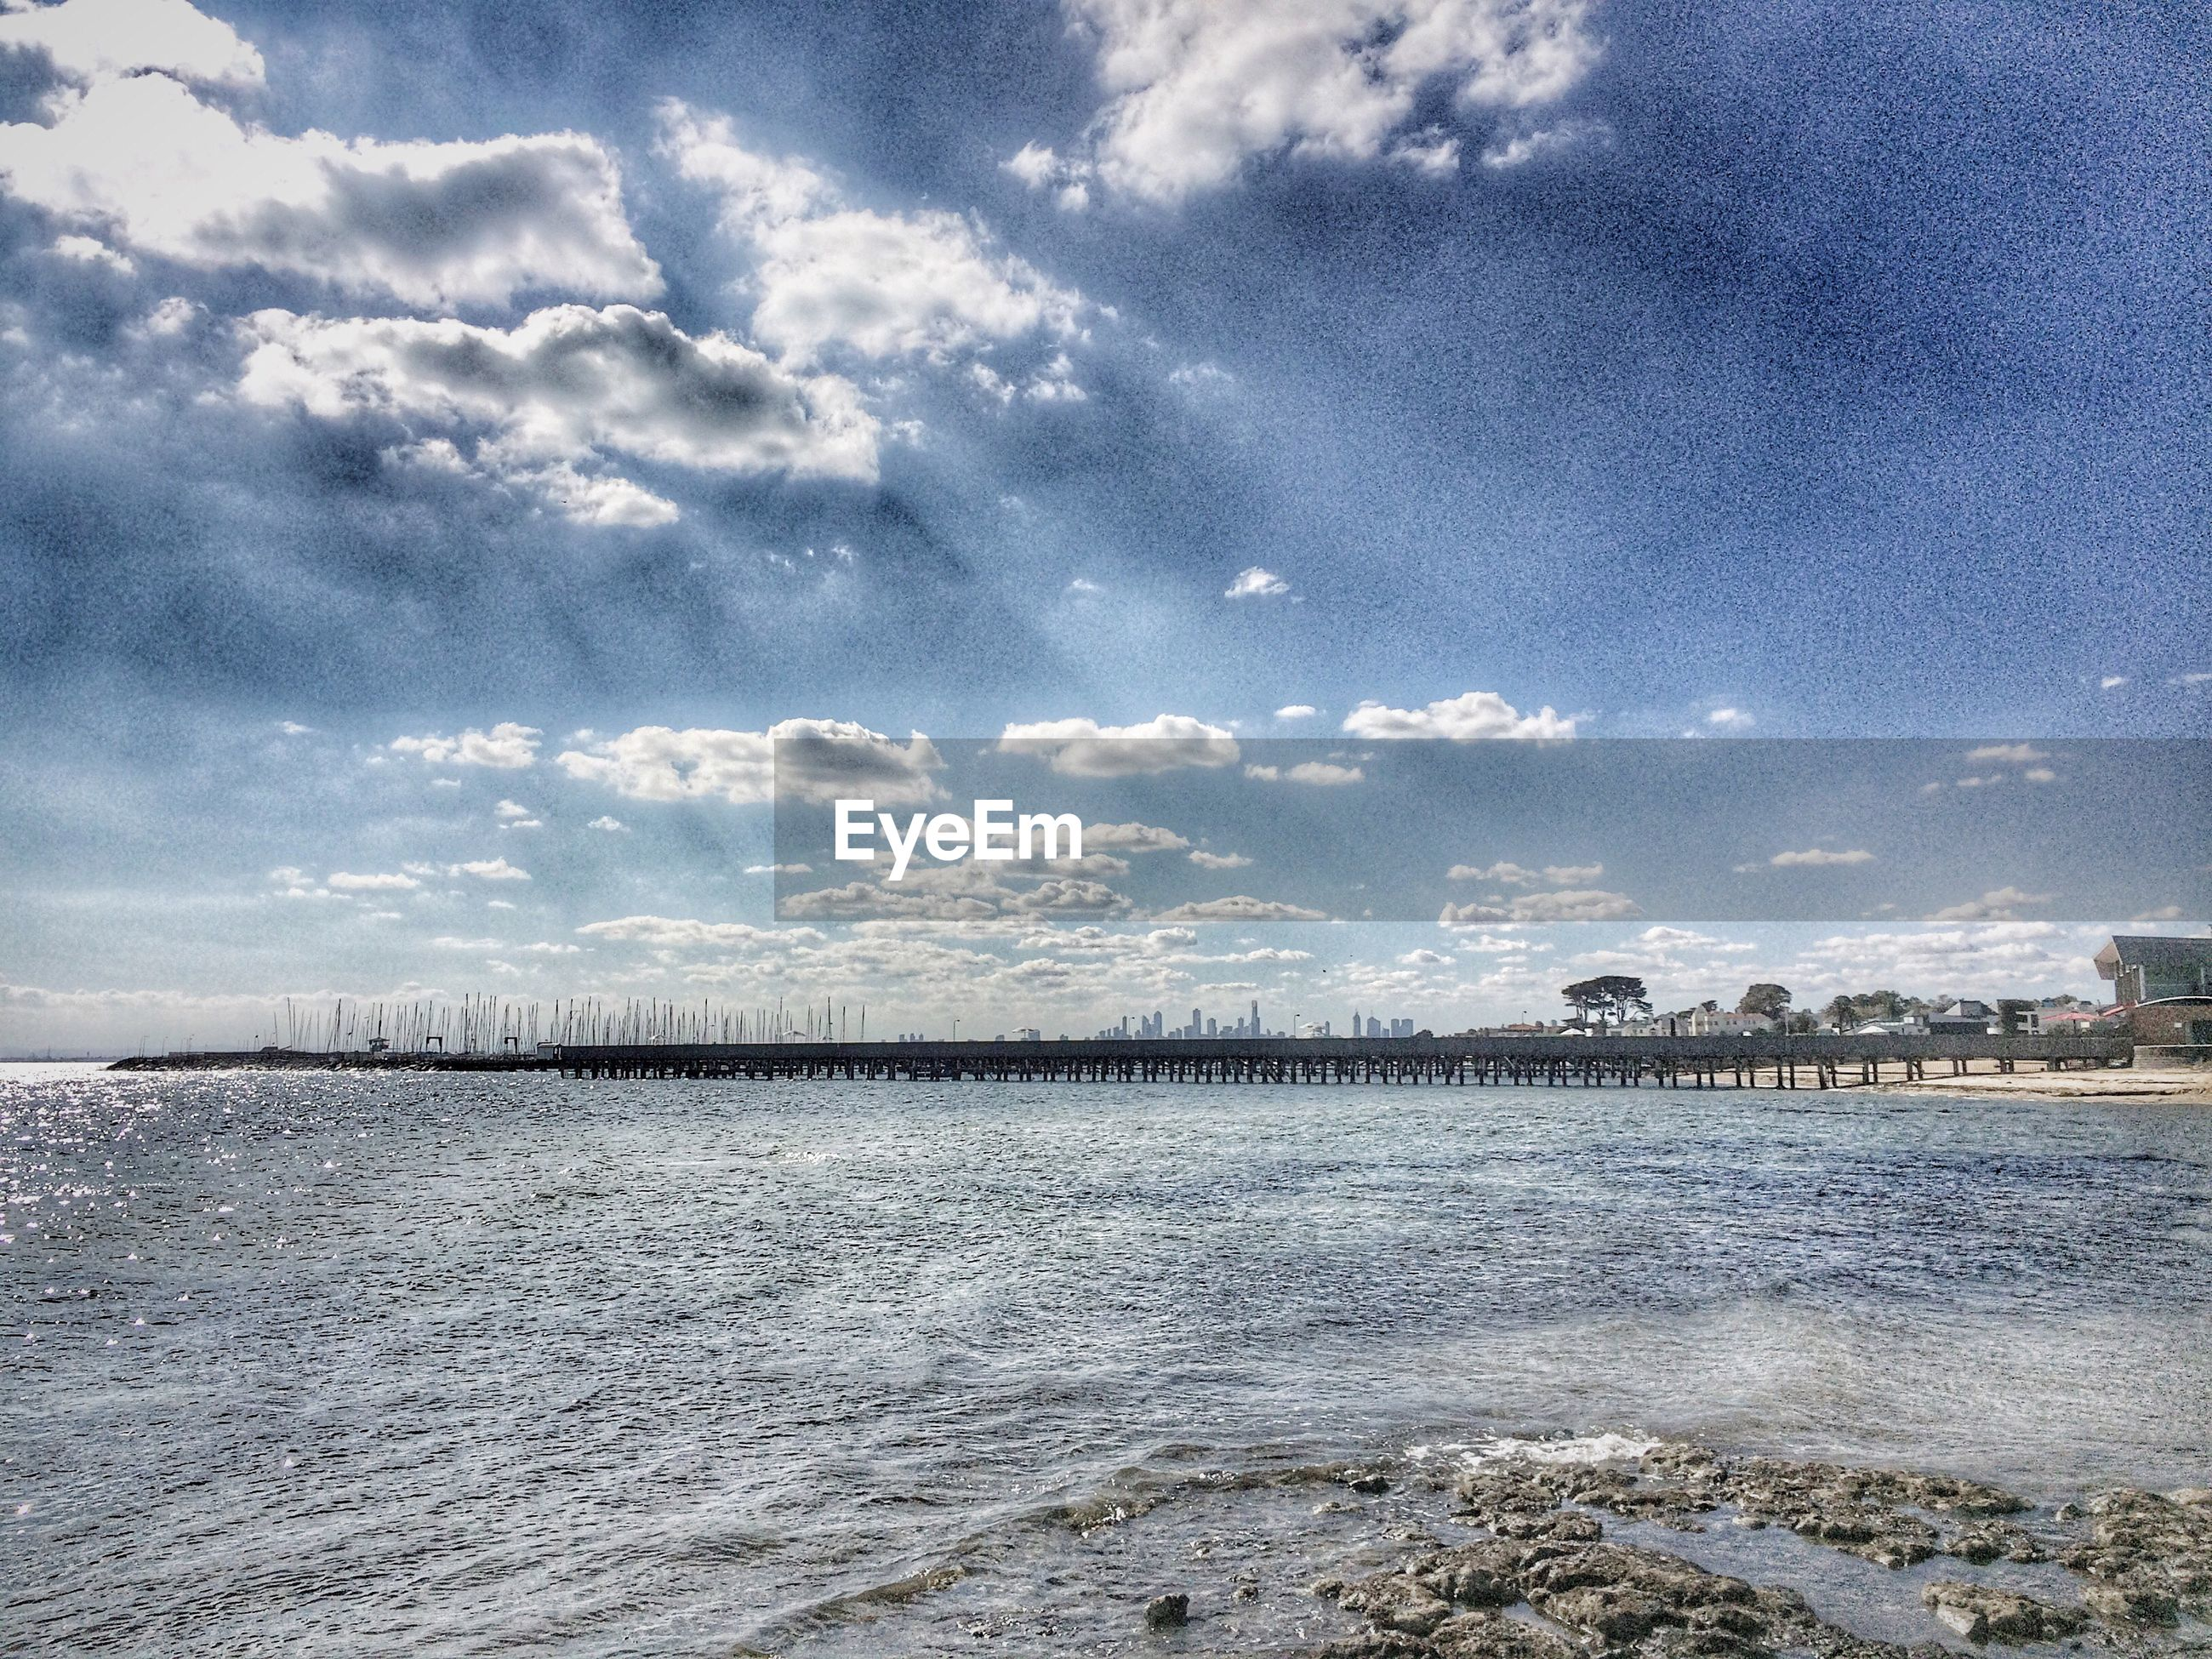 water, sky, sea, cloud - sky, scenics, beach, tranquil scene, tranquility, cloudy, beauty in nature, cloud, nature, shore, waterfront, built structure, architecture, coastline, outdoors, idyllic, horizon over water